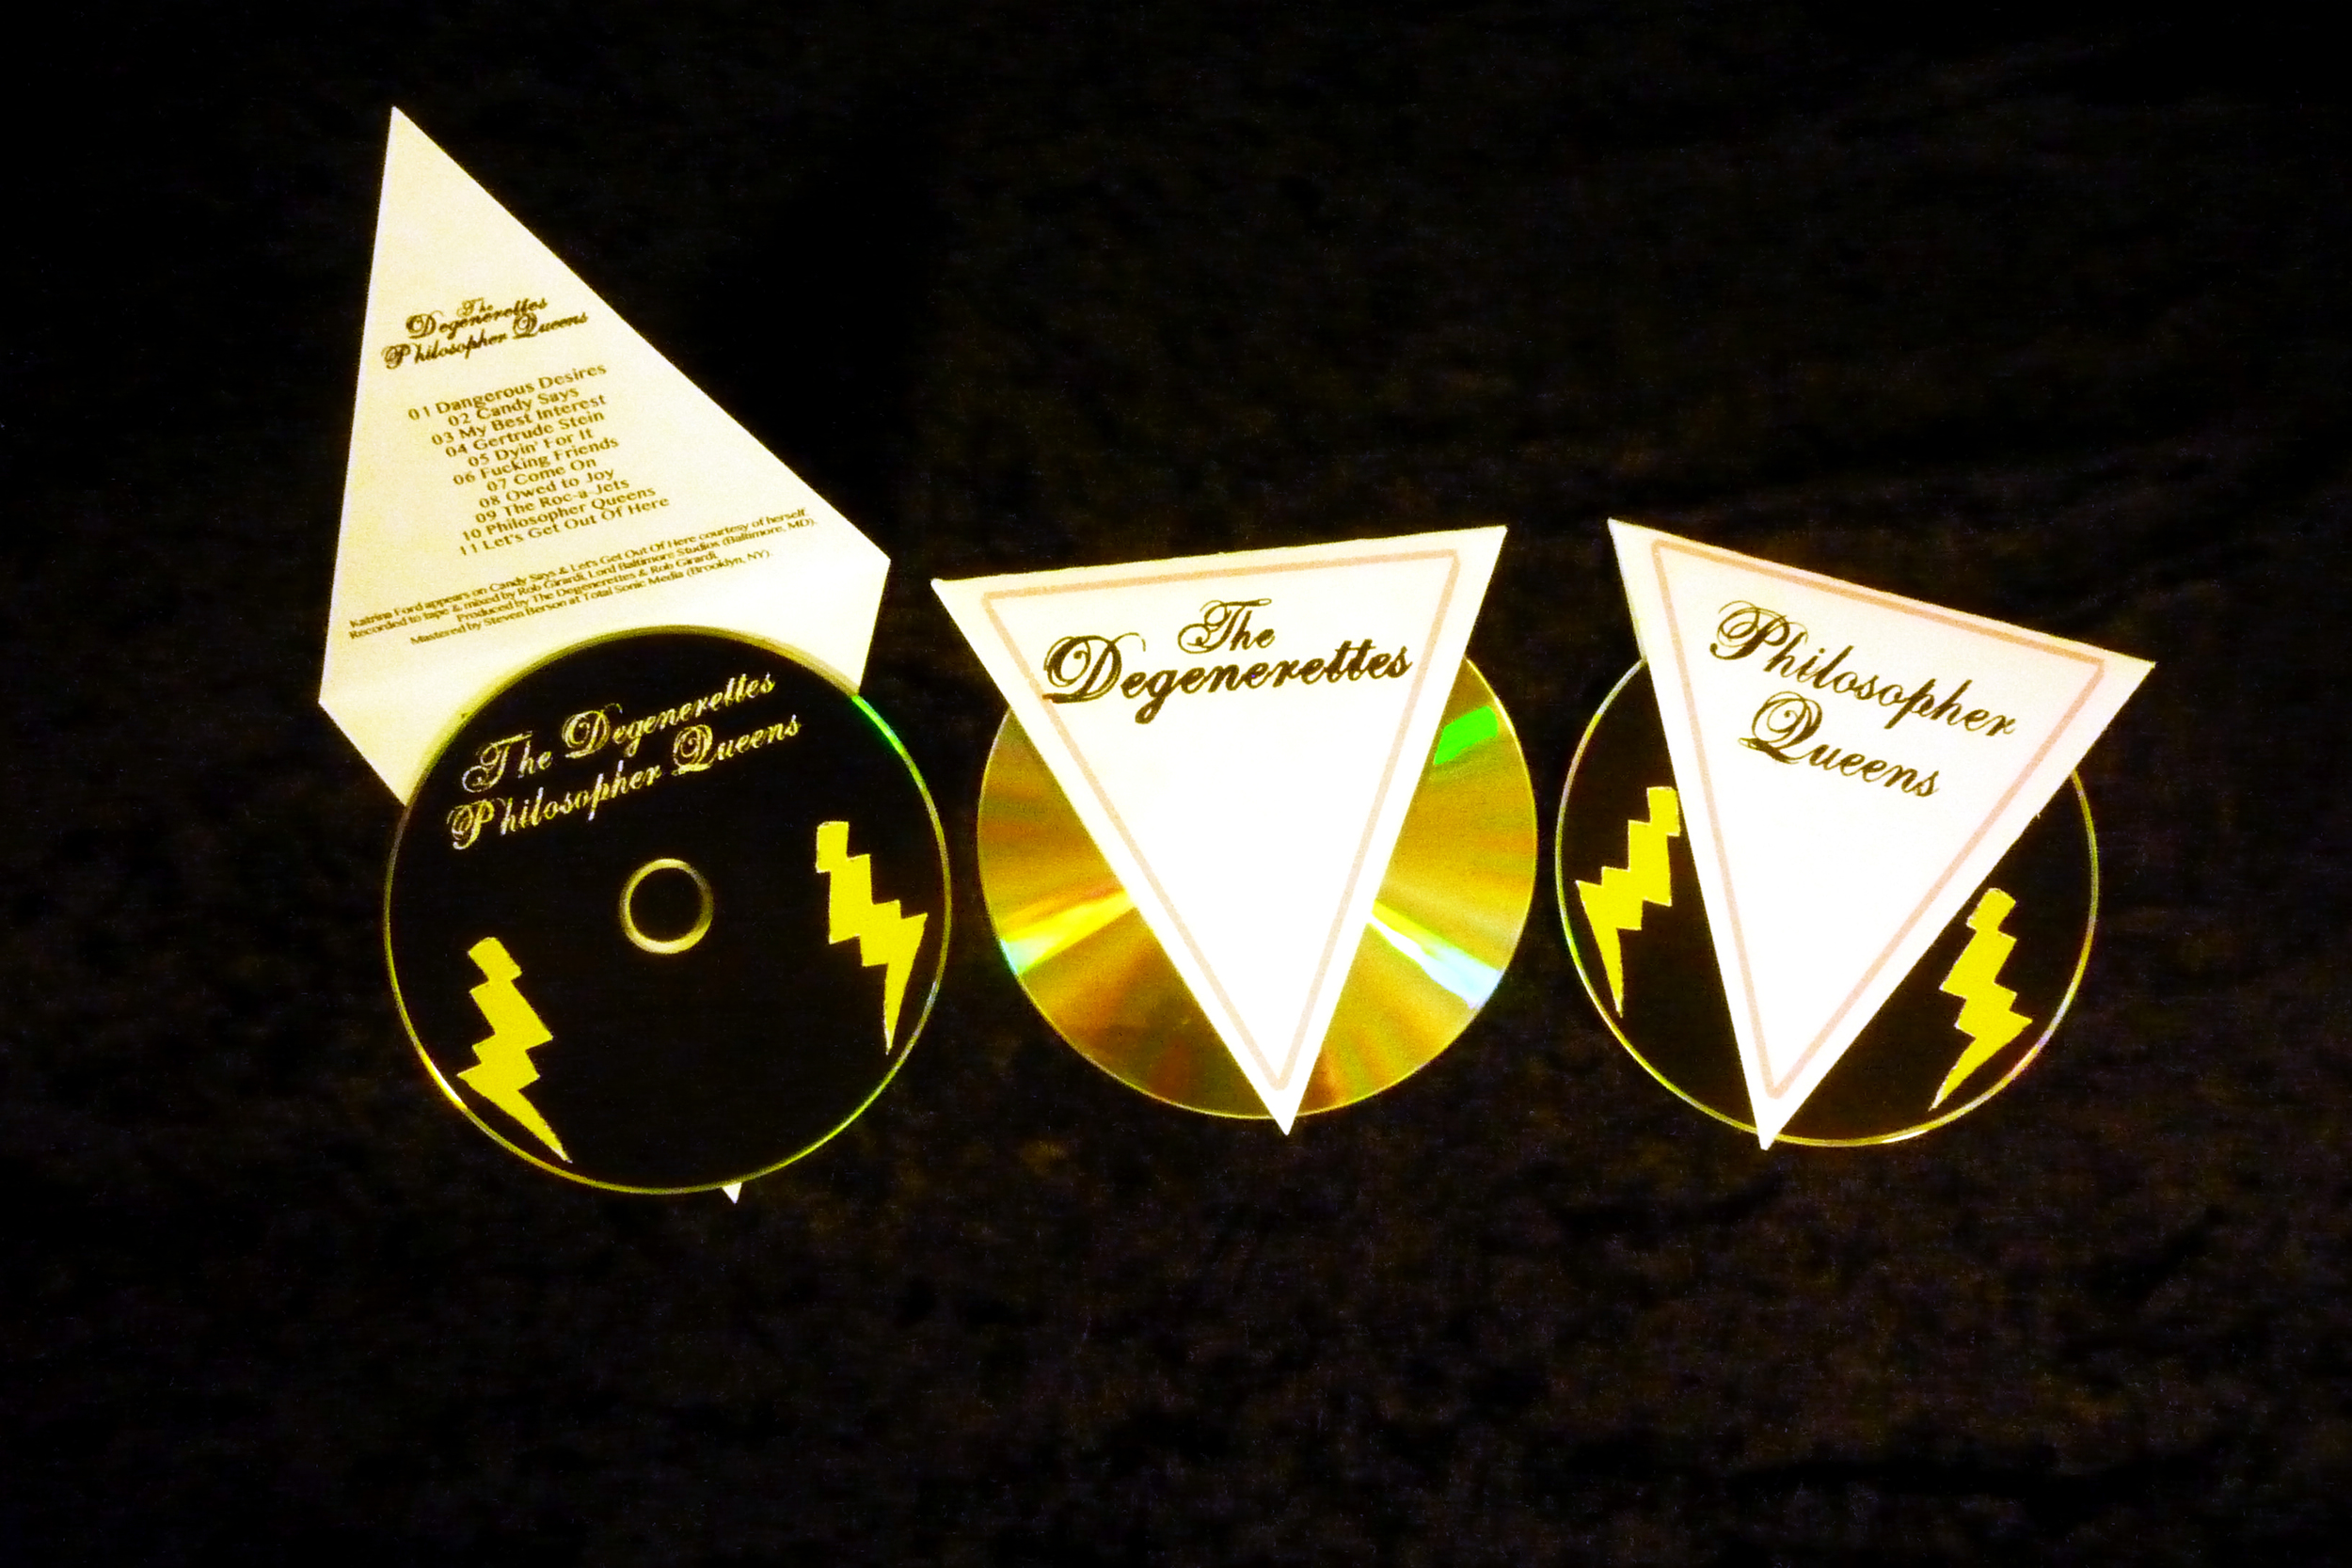 The Degenerettes  Philosopher Queens , hand-printed and cut CD covers.